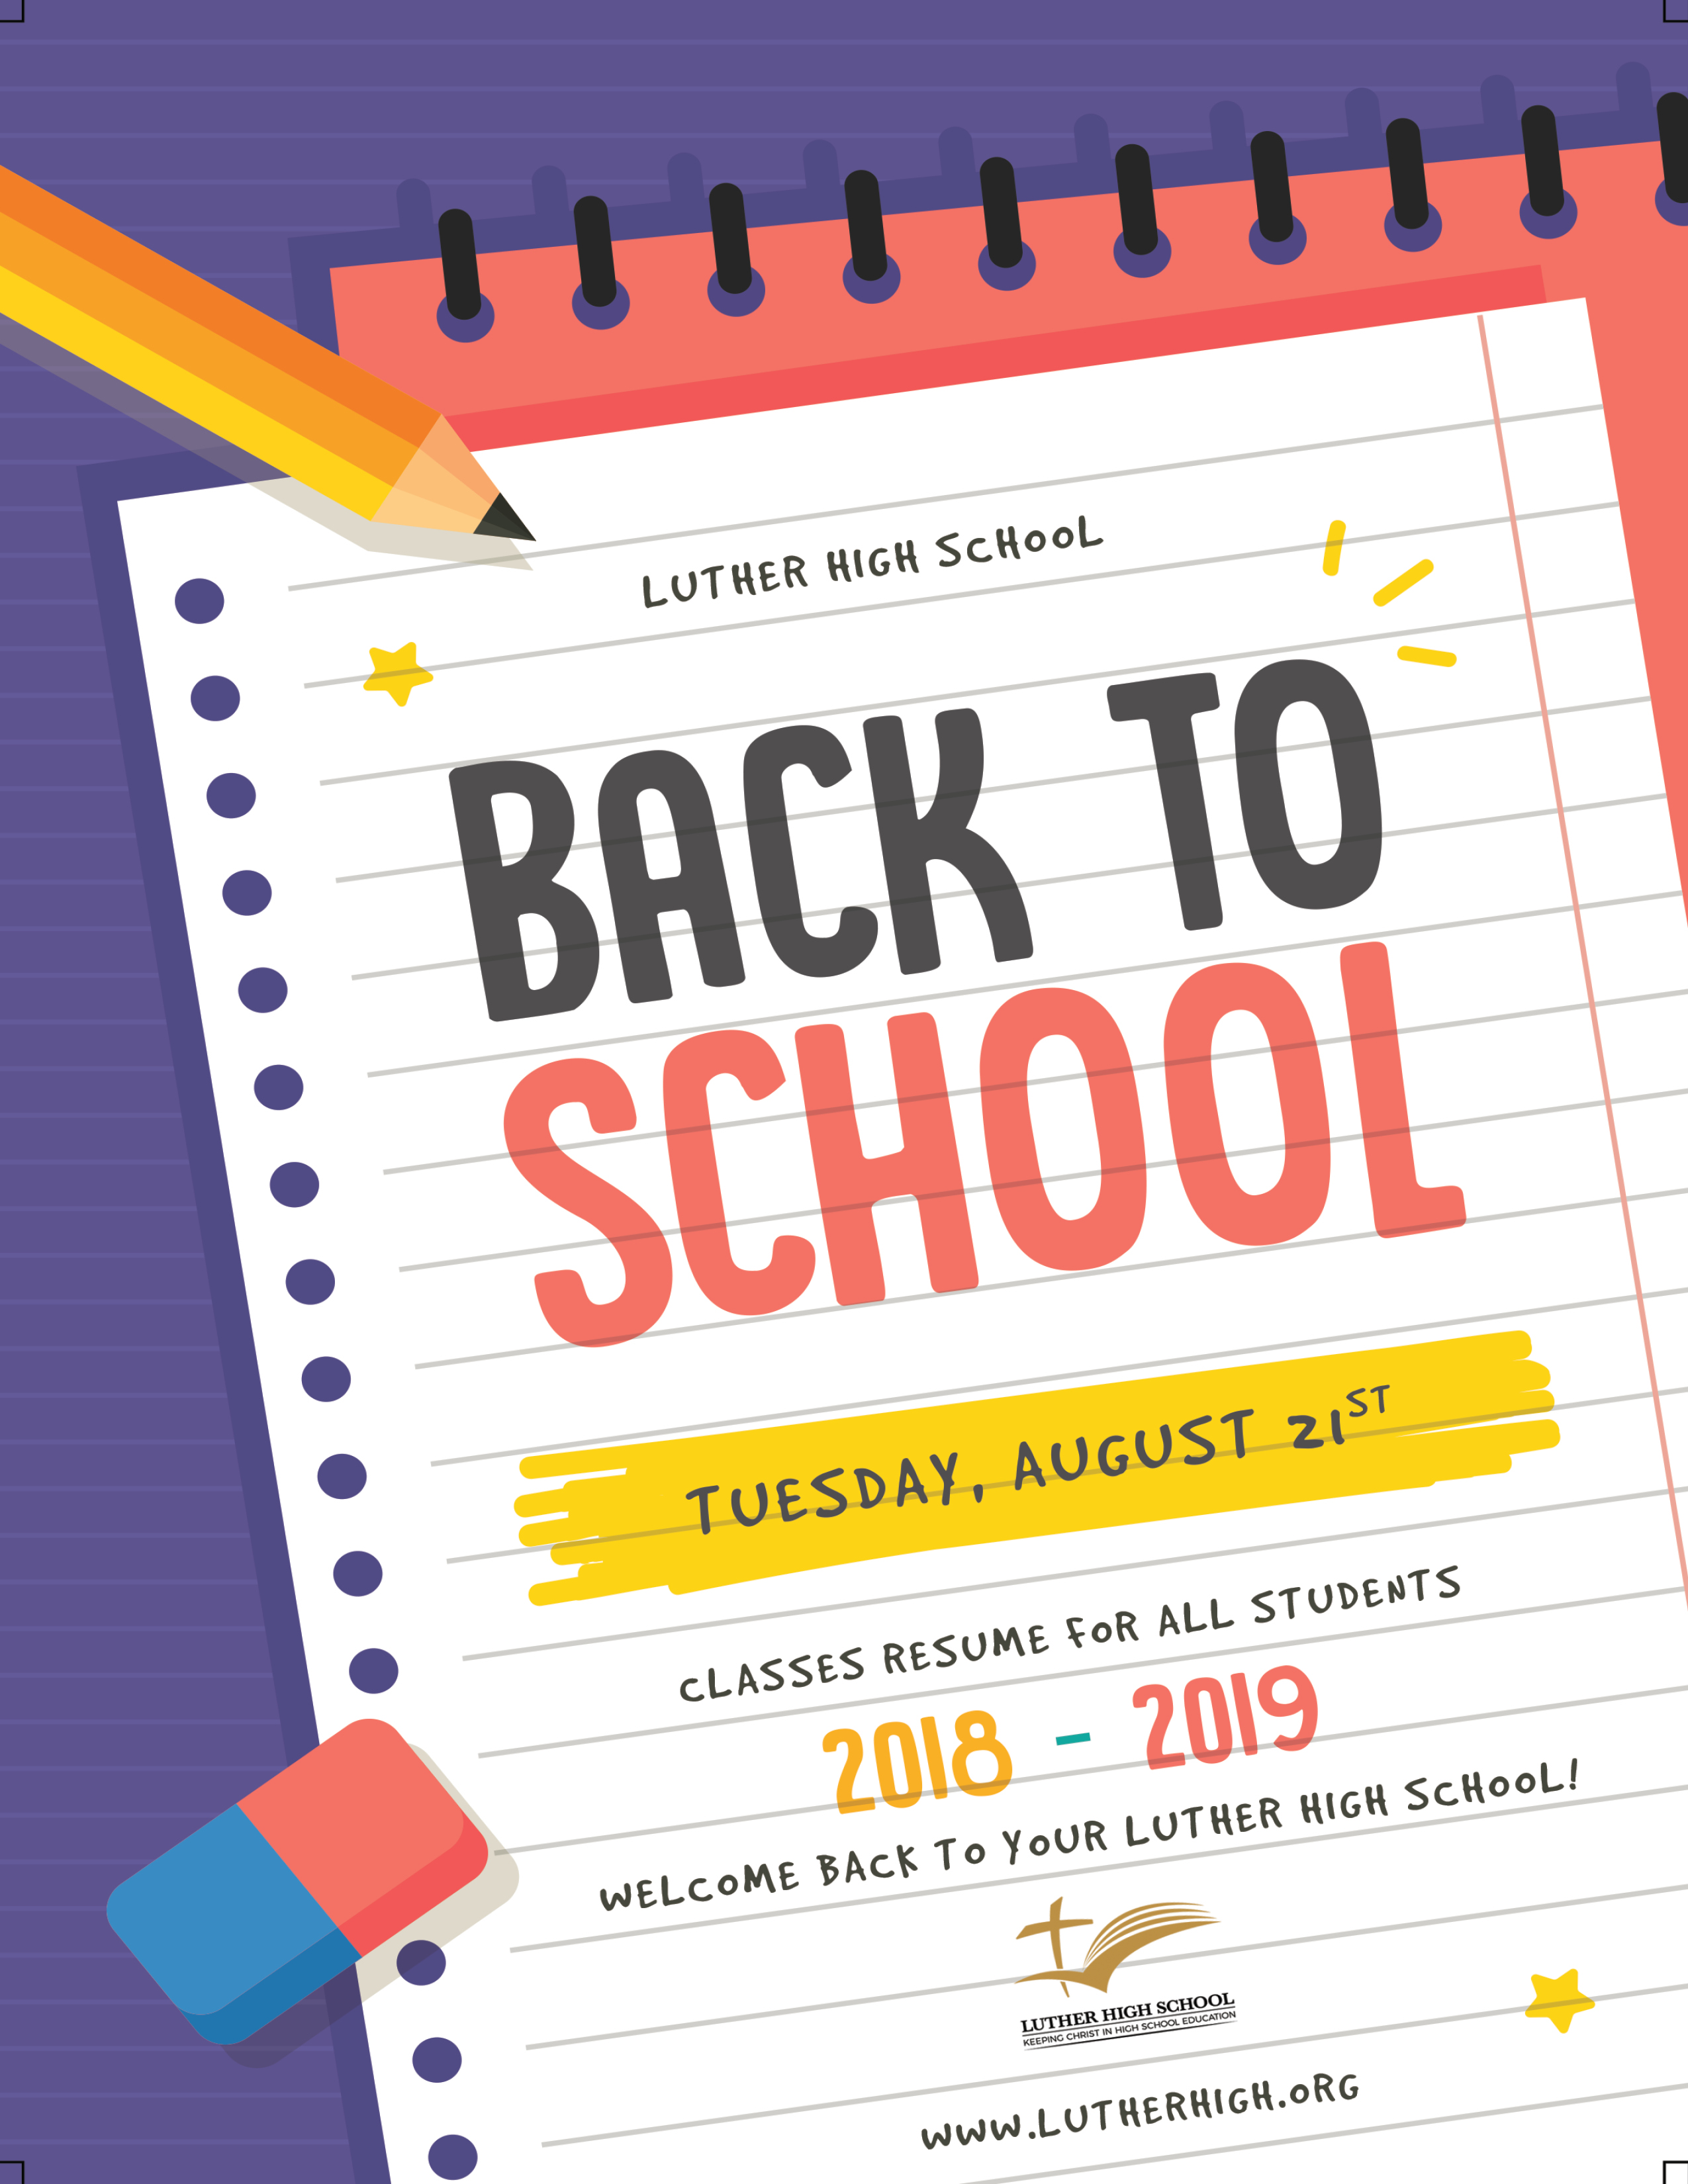 Classes Start for the 2018-19 School Year